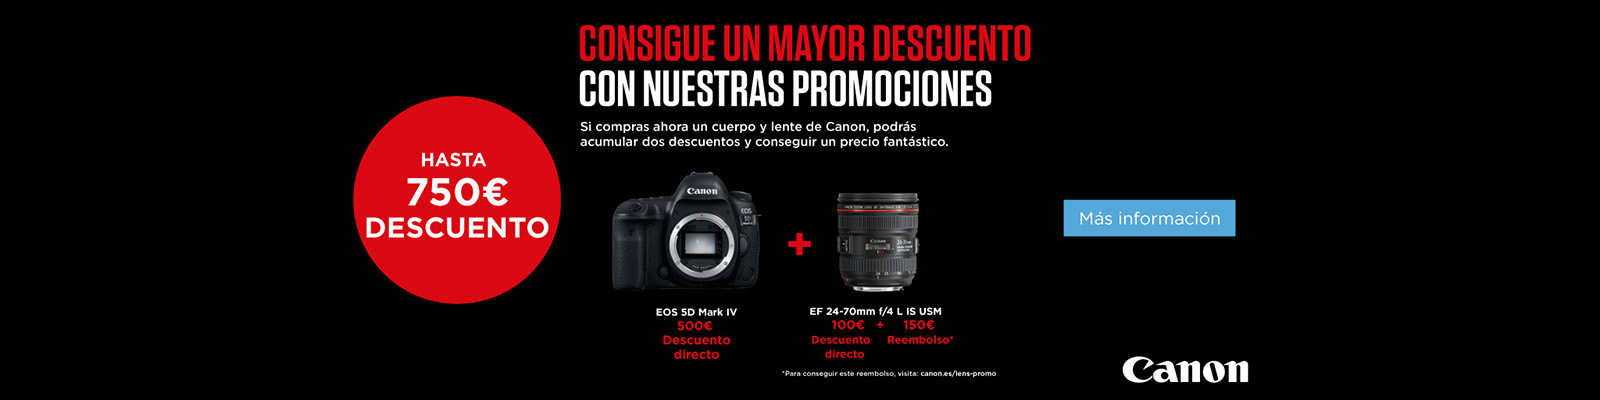 Ofetrta Canon Kit virtual